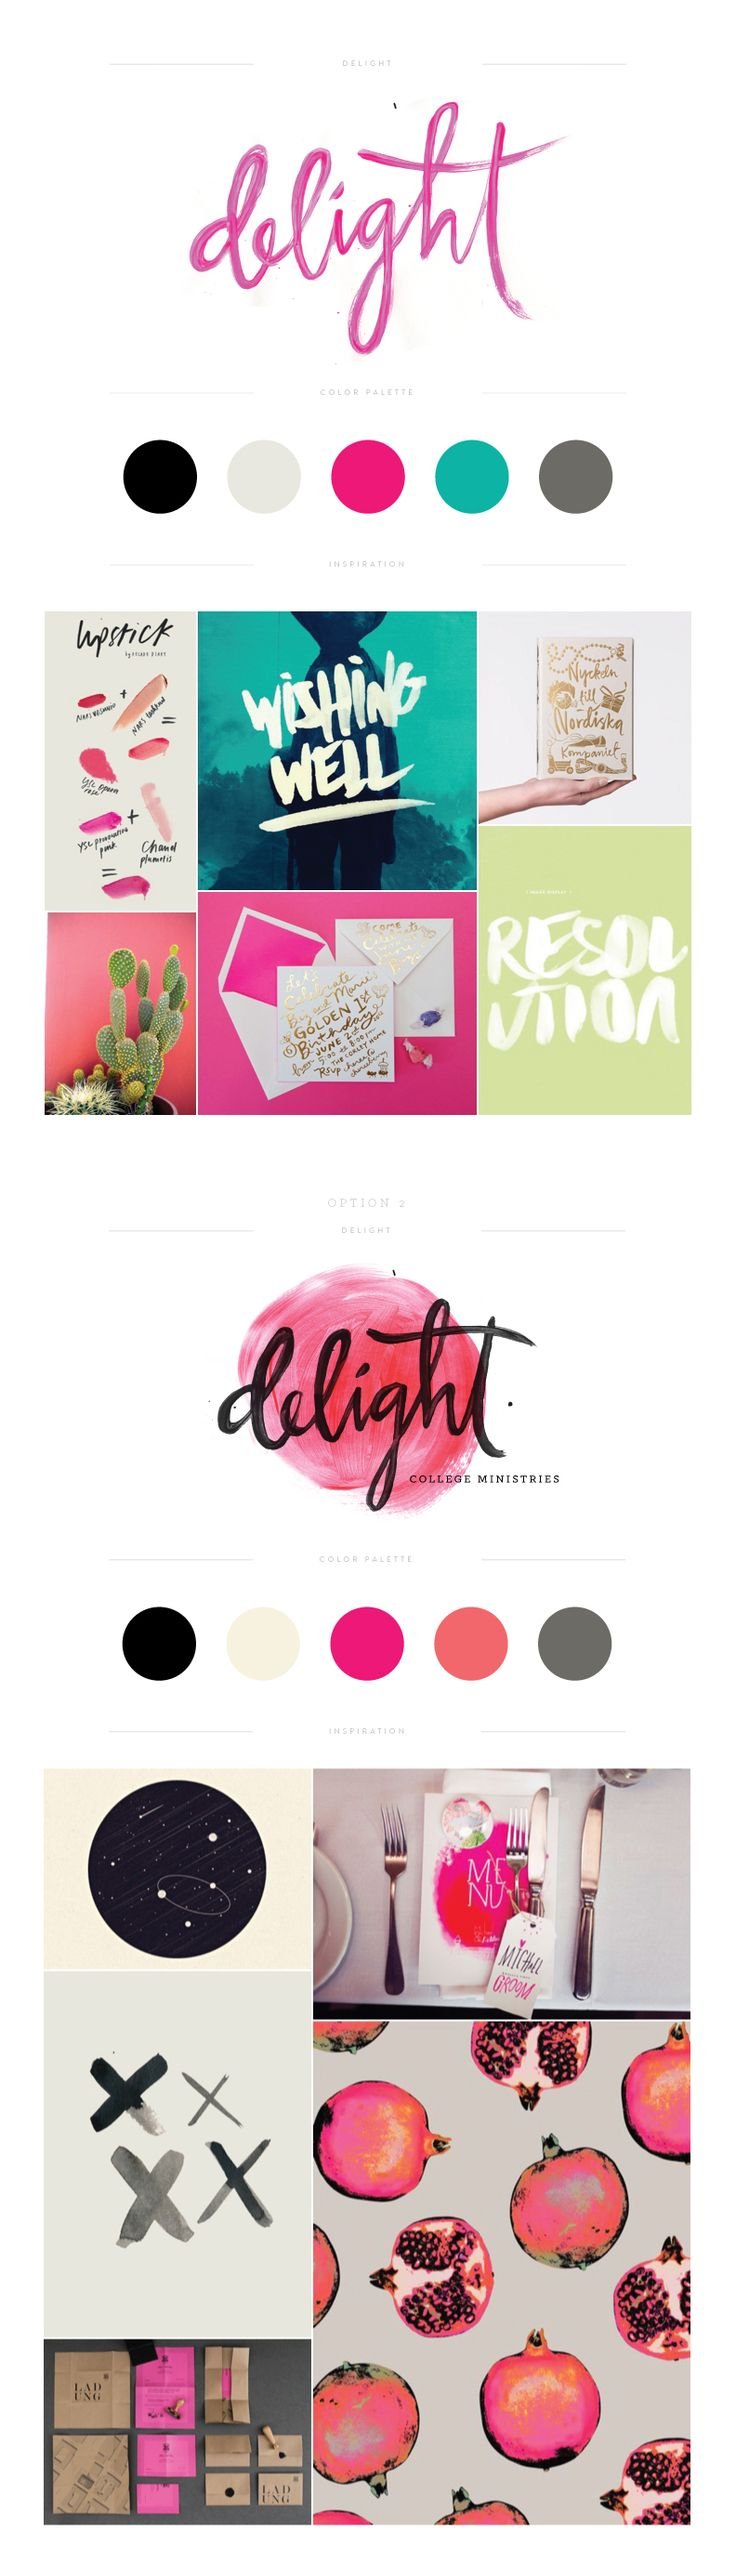 Delight Branding by Lauren Ledbetter Design  Styling  #stationary #corporate #design #corporatedesign #identity #branding #identity #branding #marketing / #logo #design #graphic #branding #identity #brand #logotype #typography #creative